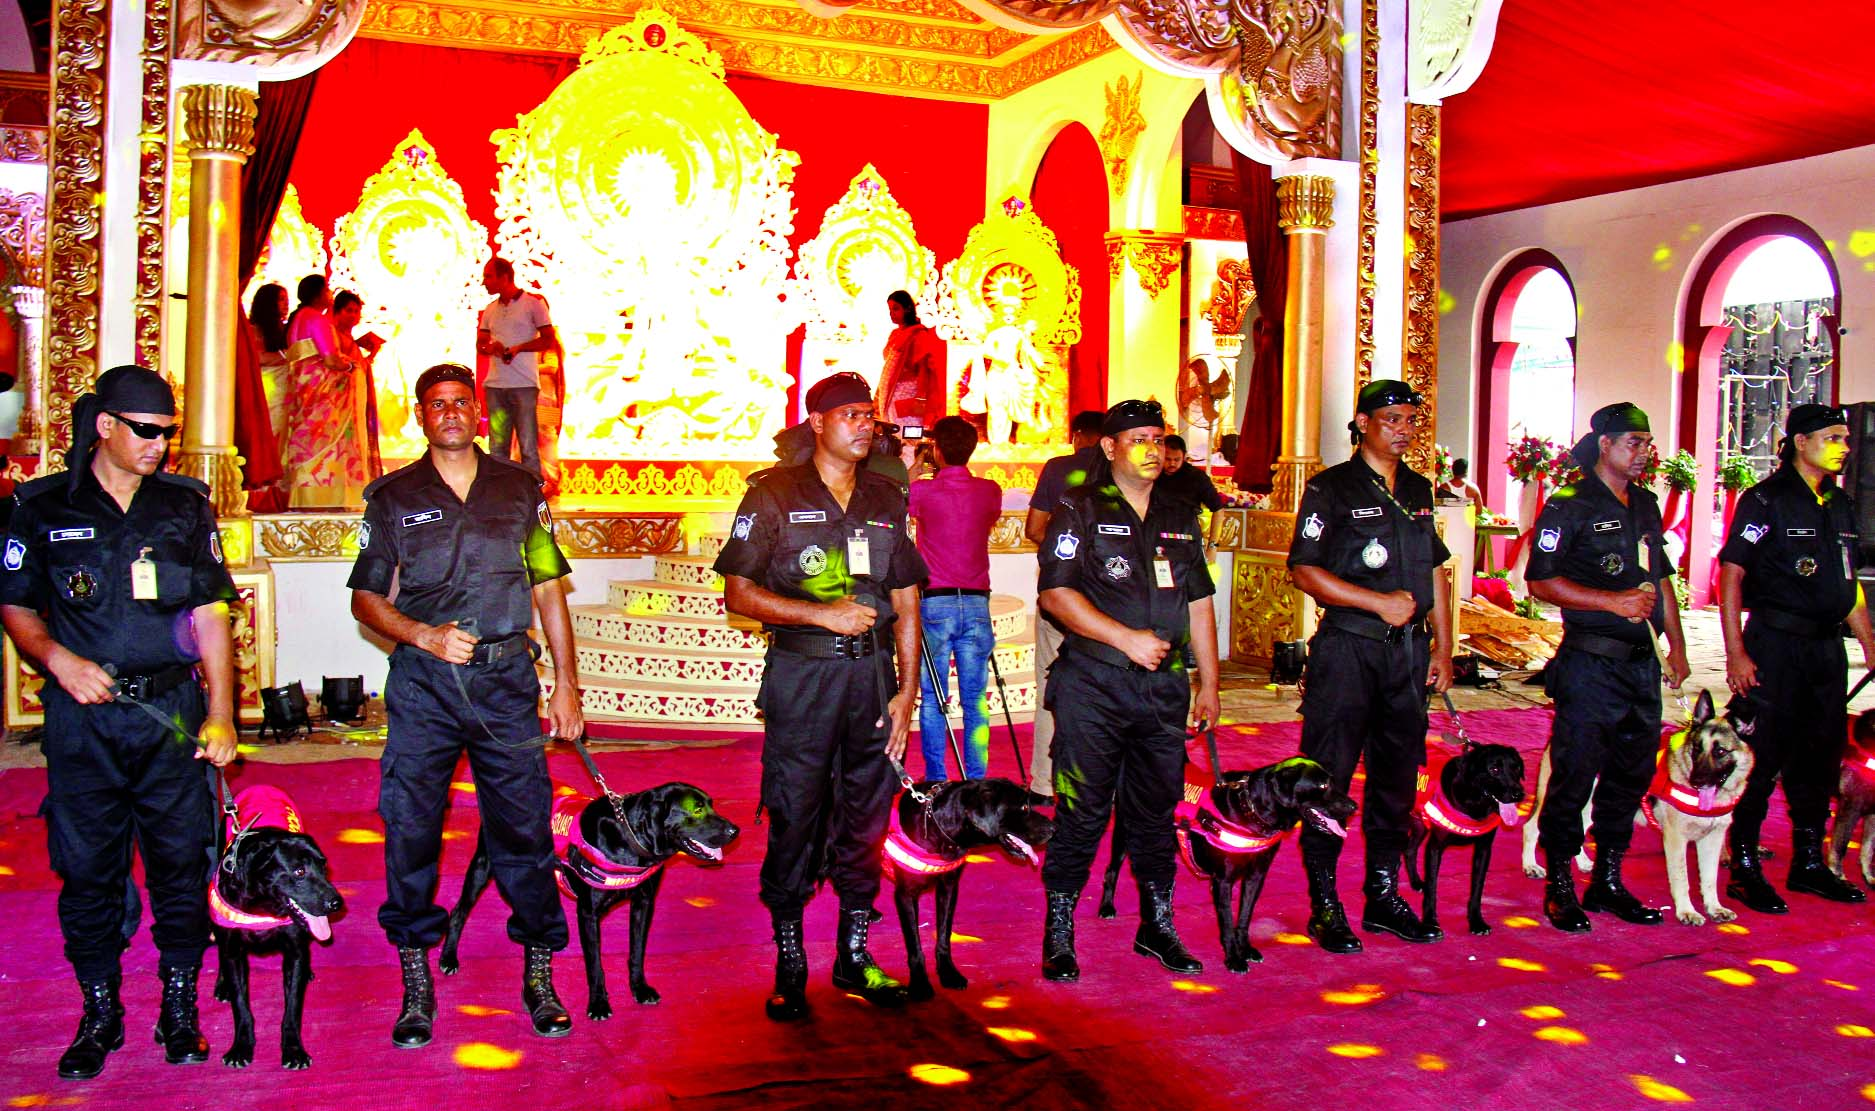 Security steps beefed-up around Puja mandops to face any untoward situation across the country. This picture was taken from a Durga Puja mondap in city's Banani area on Tuesday.